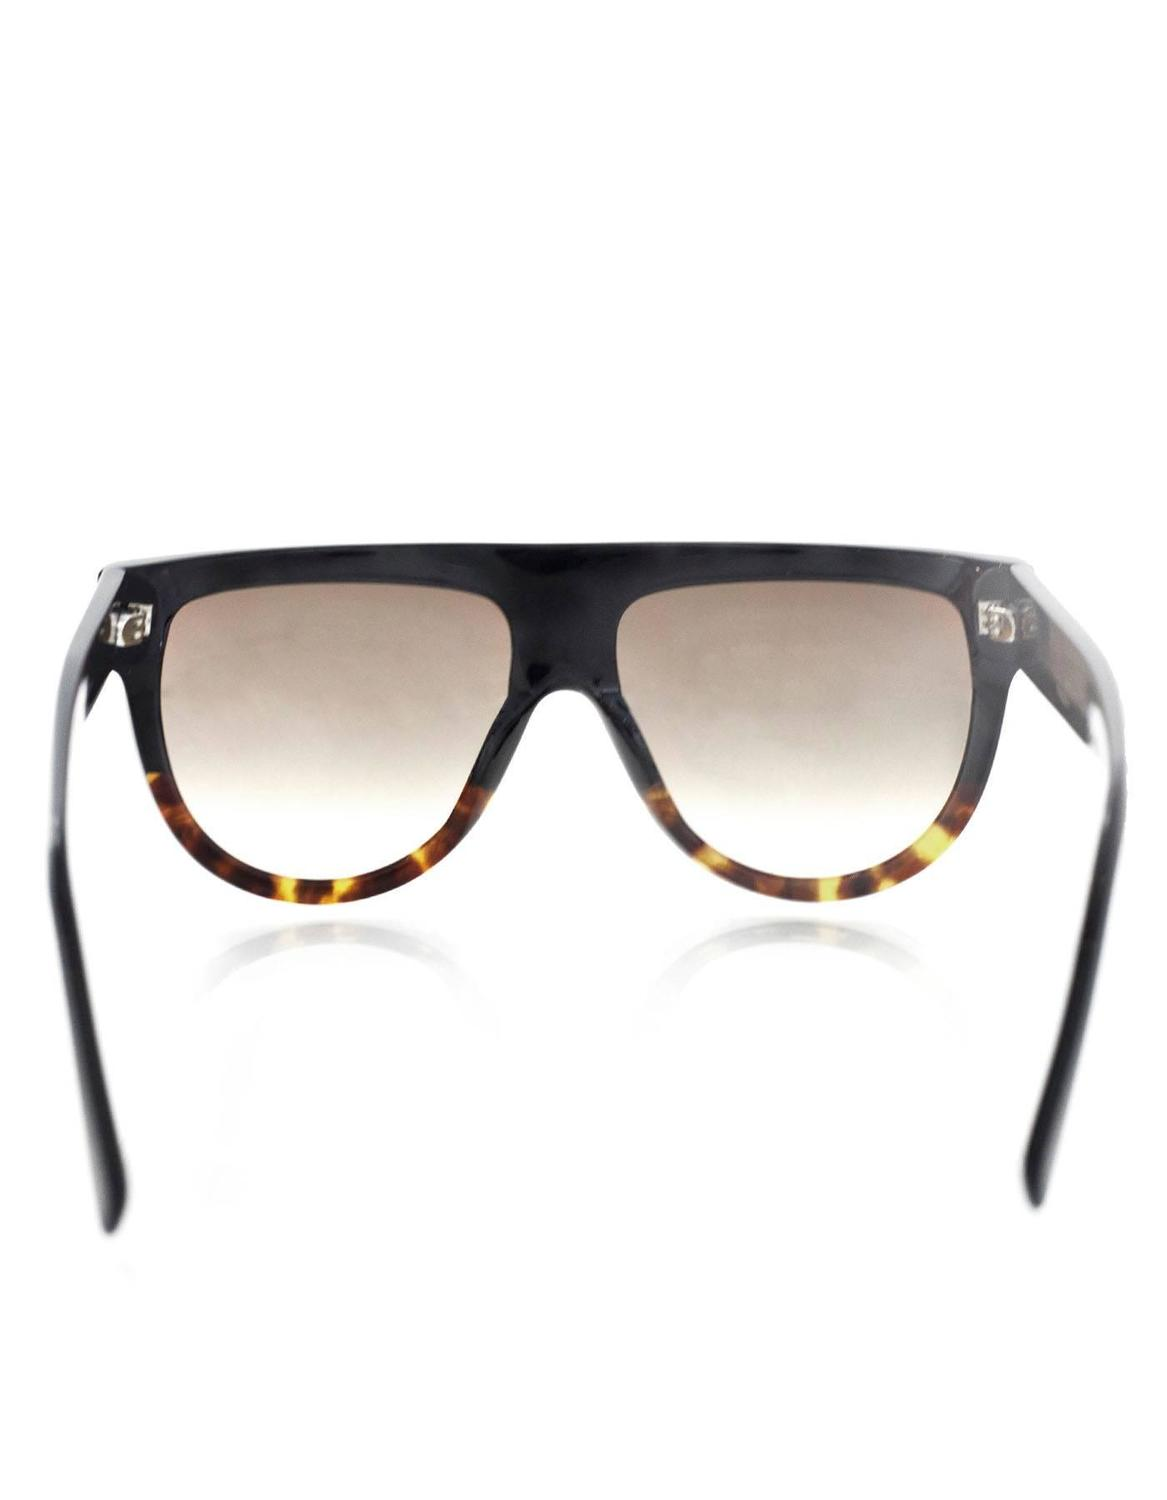 631265c63f Celine Shadow Flat Top Sunglasses with Case For Sale at 1stdibs